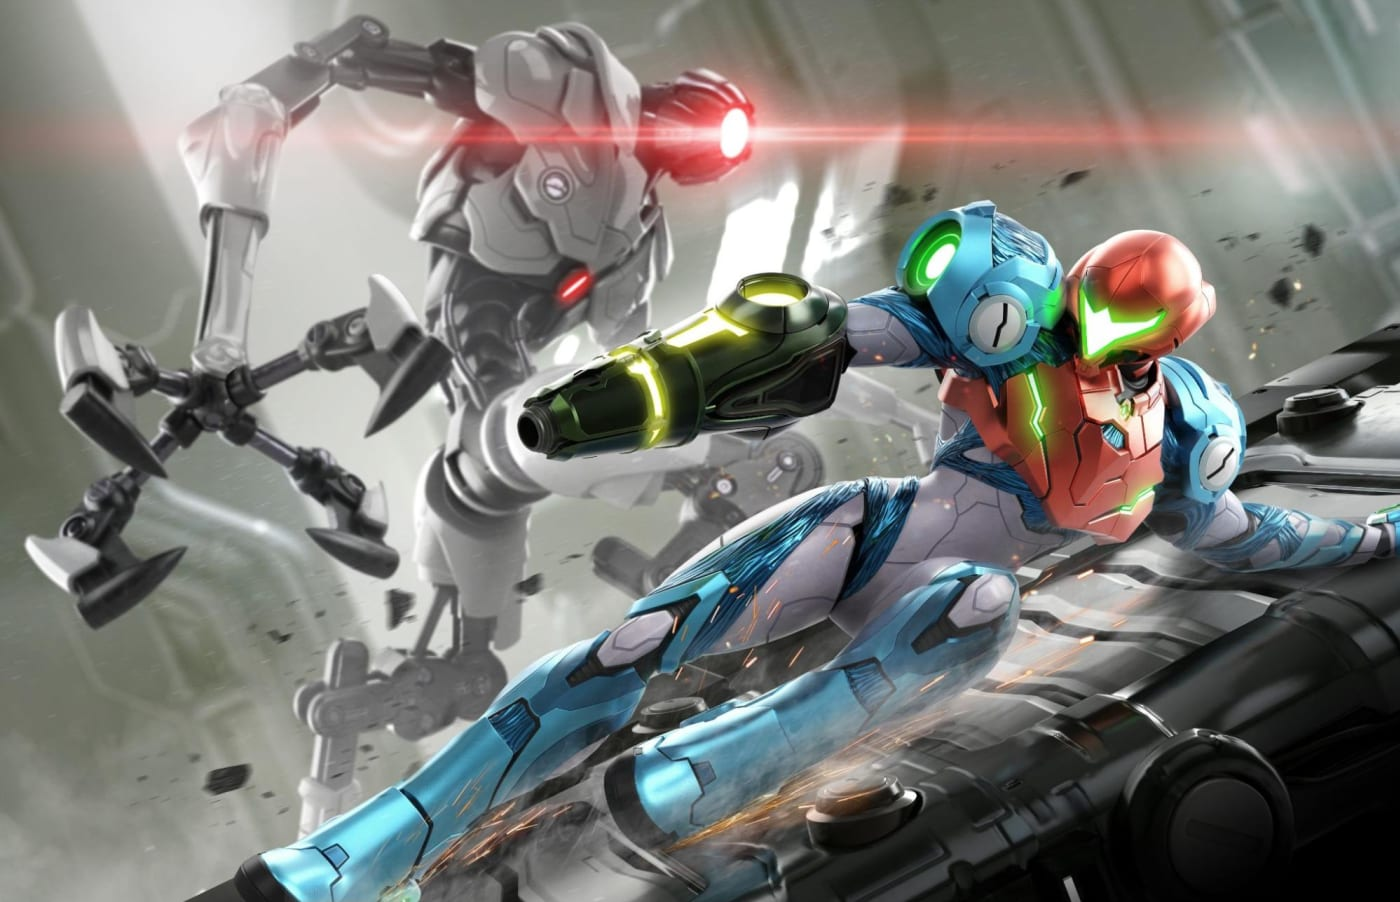 Metroid Dread for the Nintendo Switch